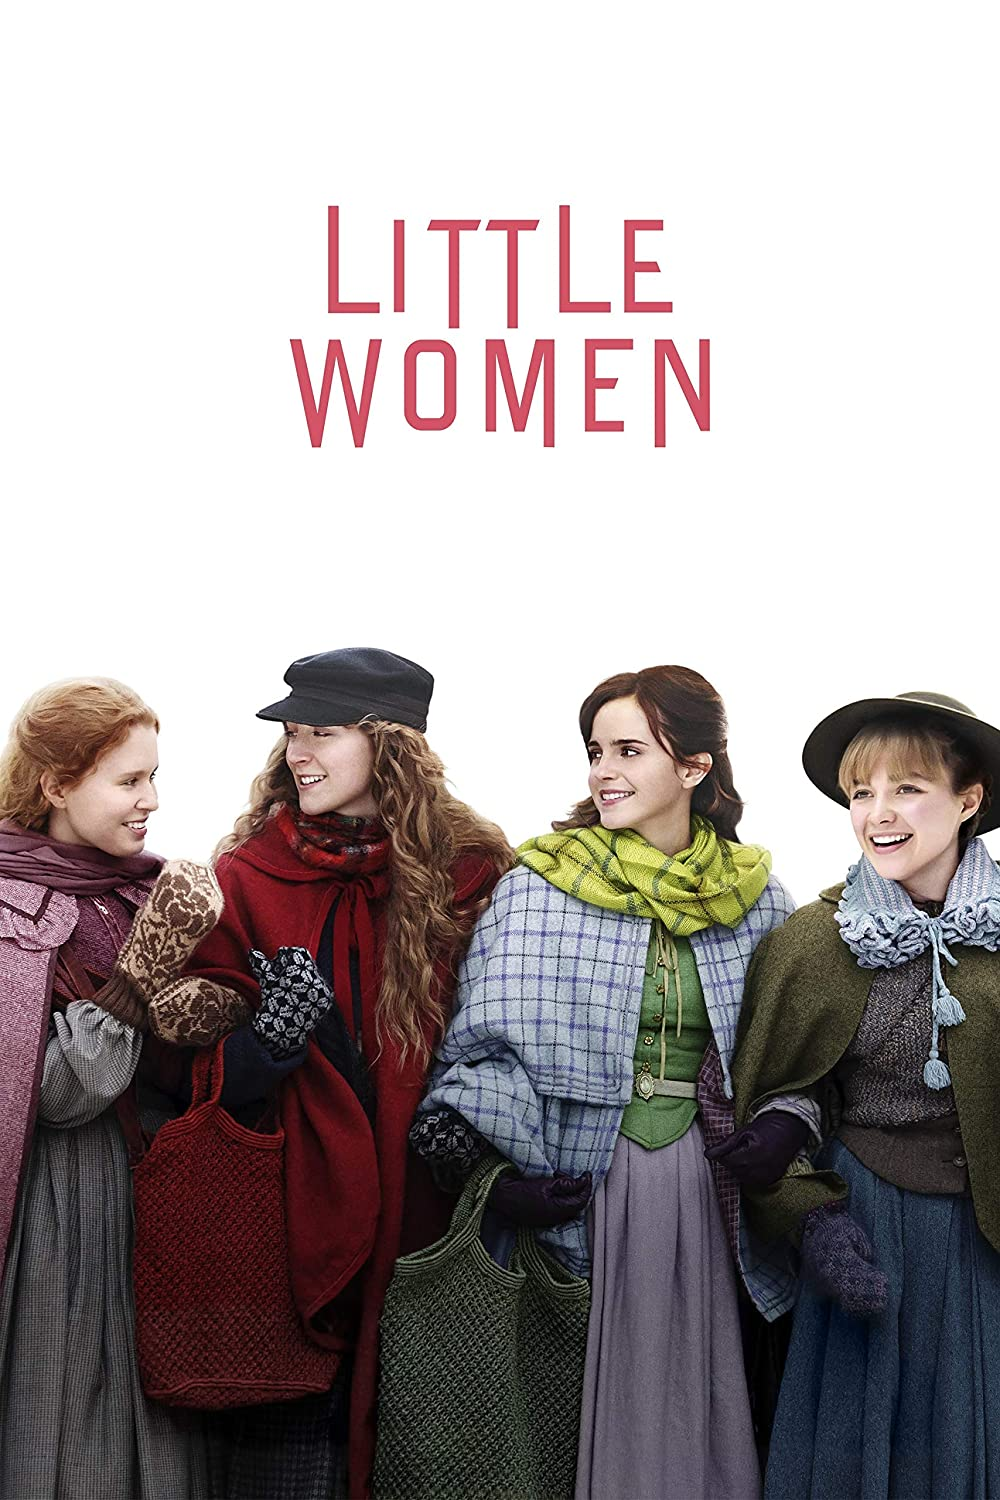 Little Women NEW At the price Poster Print Wall Art Gift